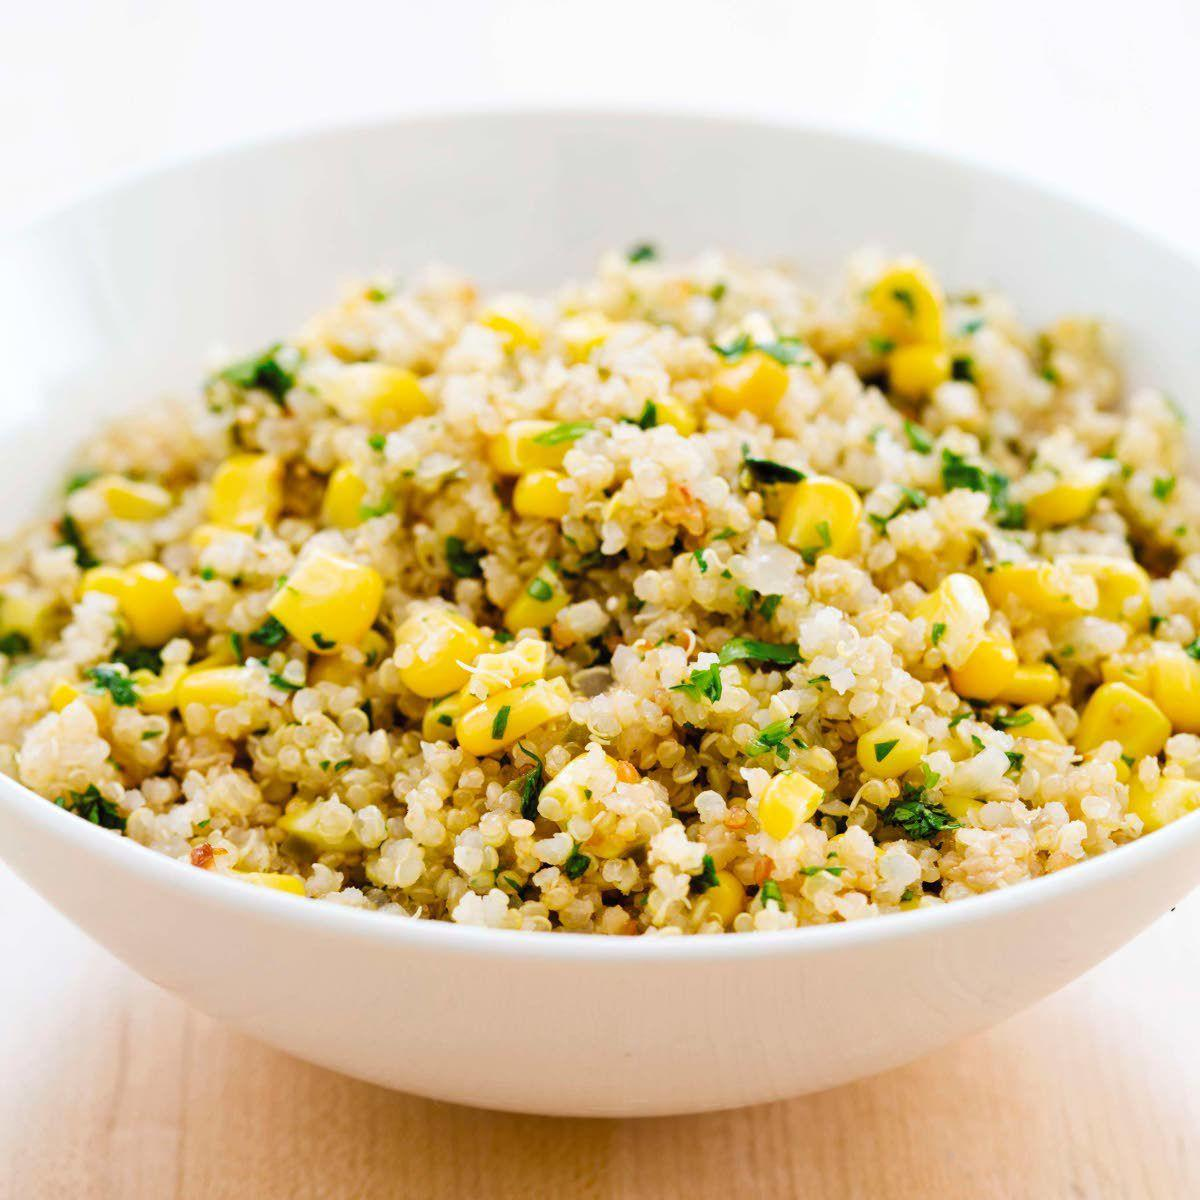 Quinoa is great in slow-cooker side